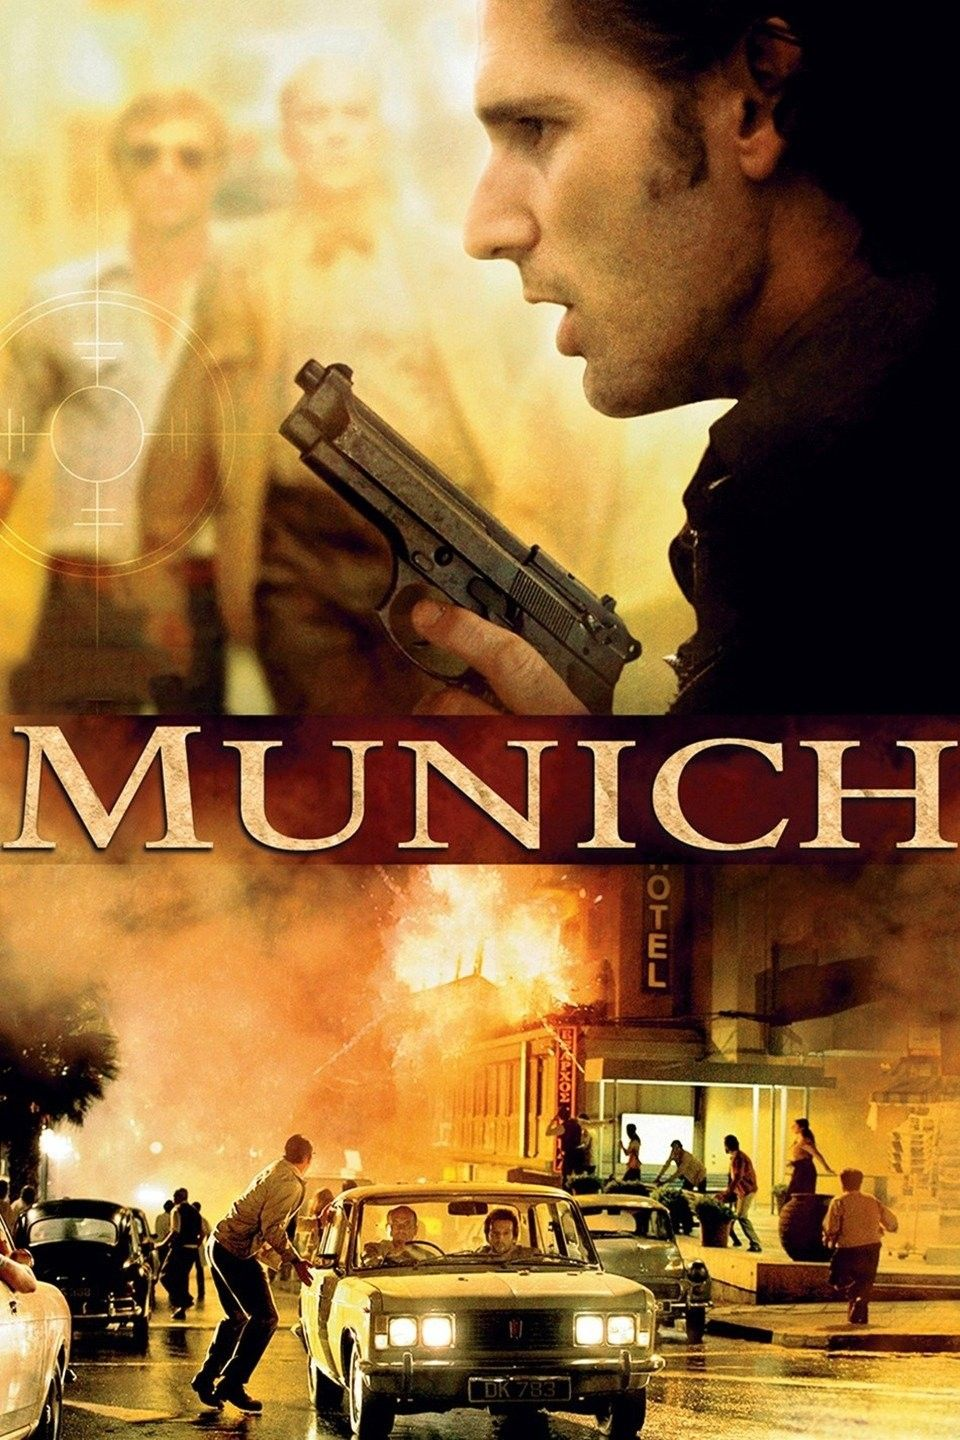 munich movies 2005 posters spielberg film mossad steven dvd poster israeli london fallen cast tv fanart spy which films movieweb